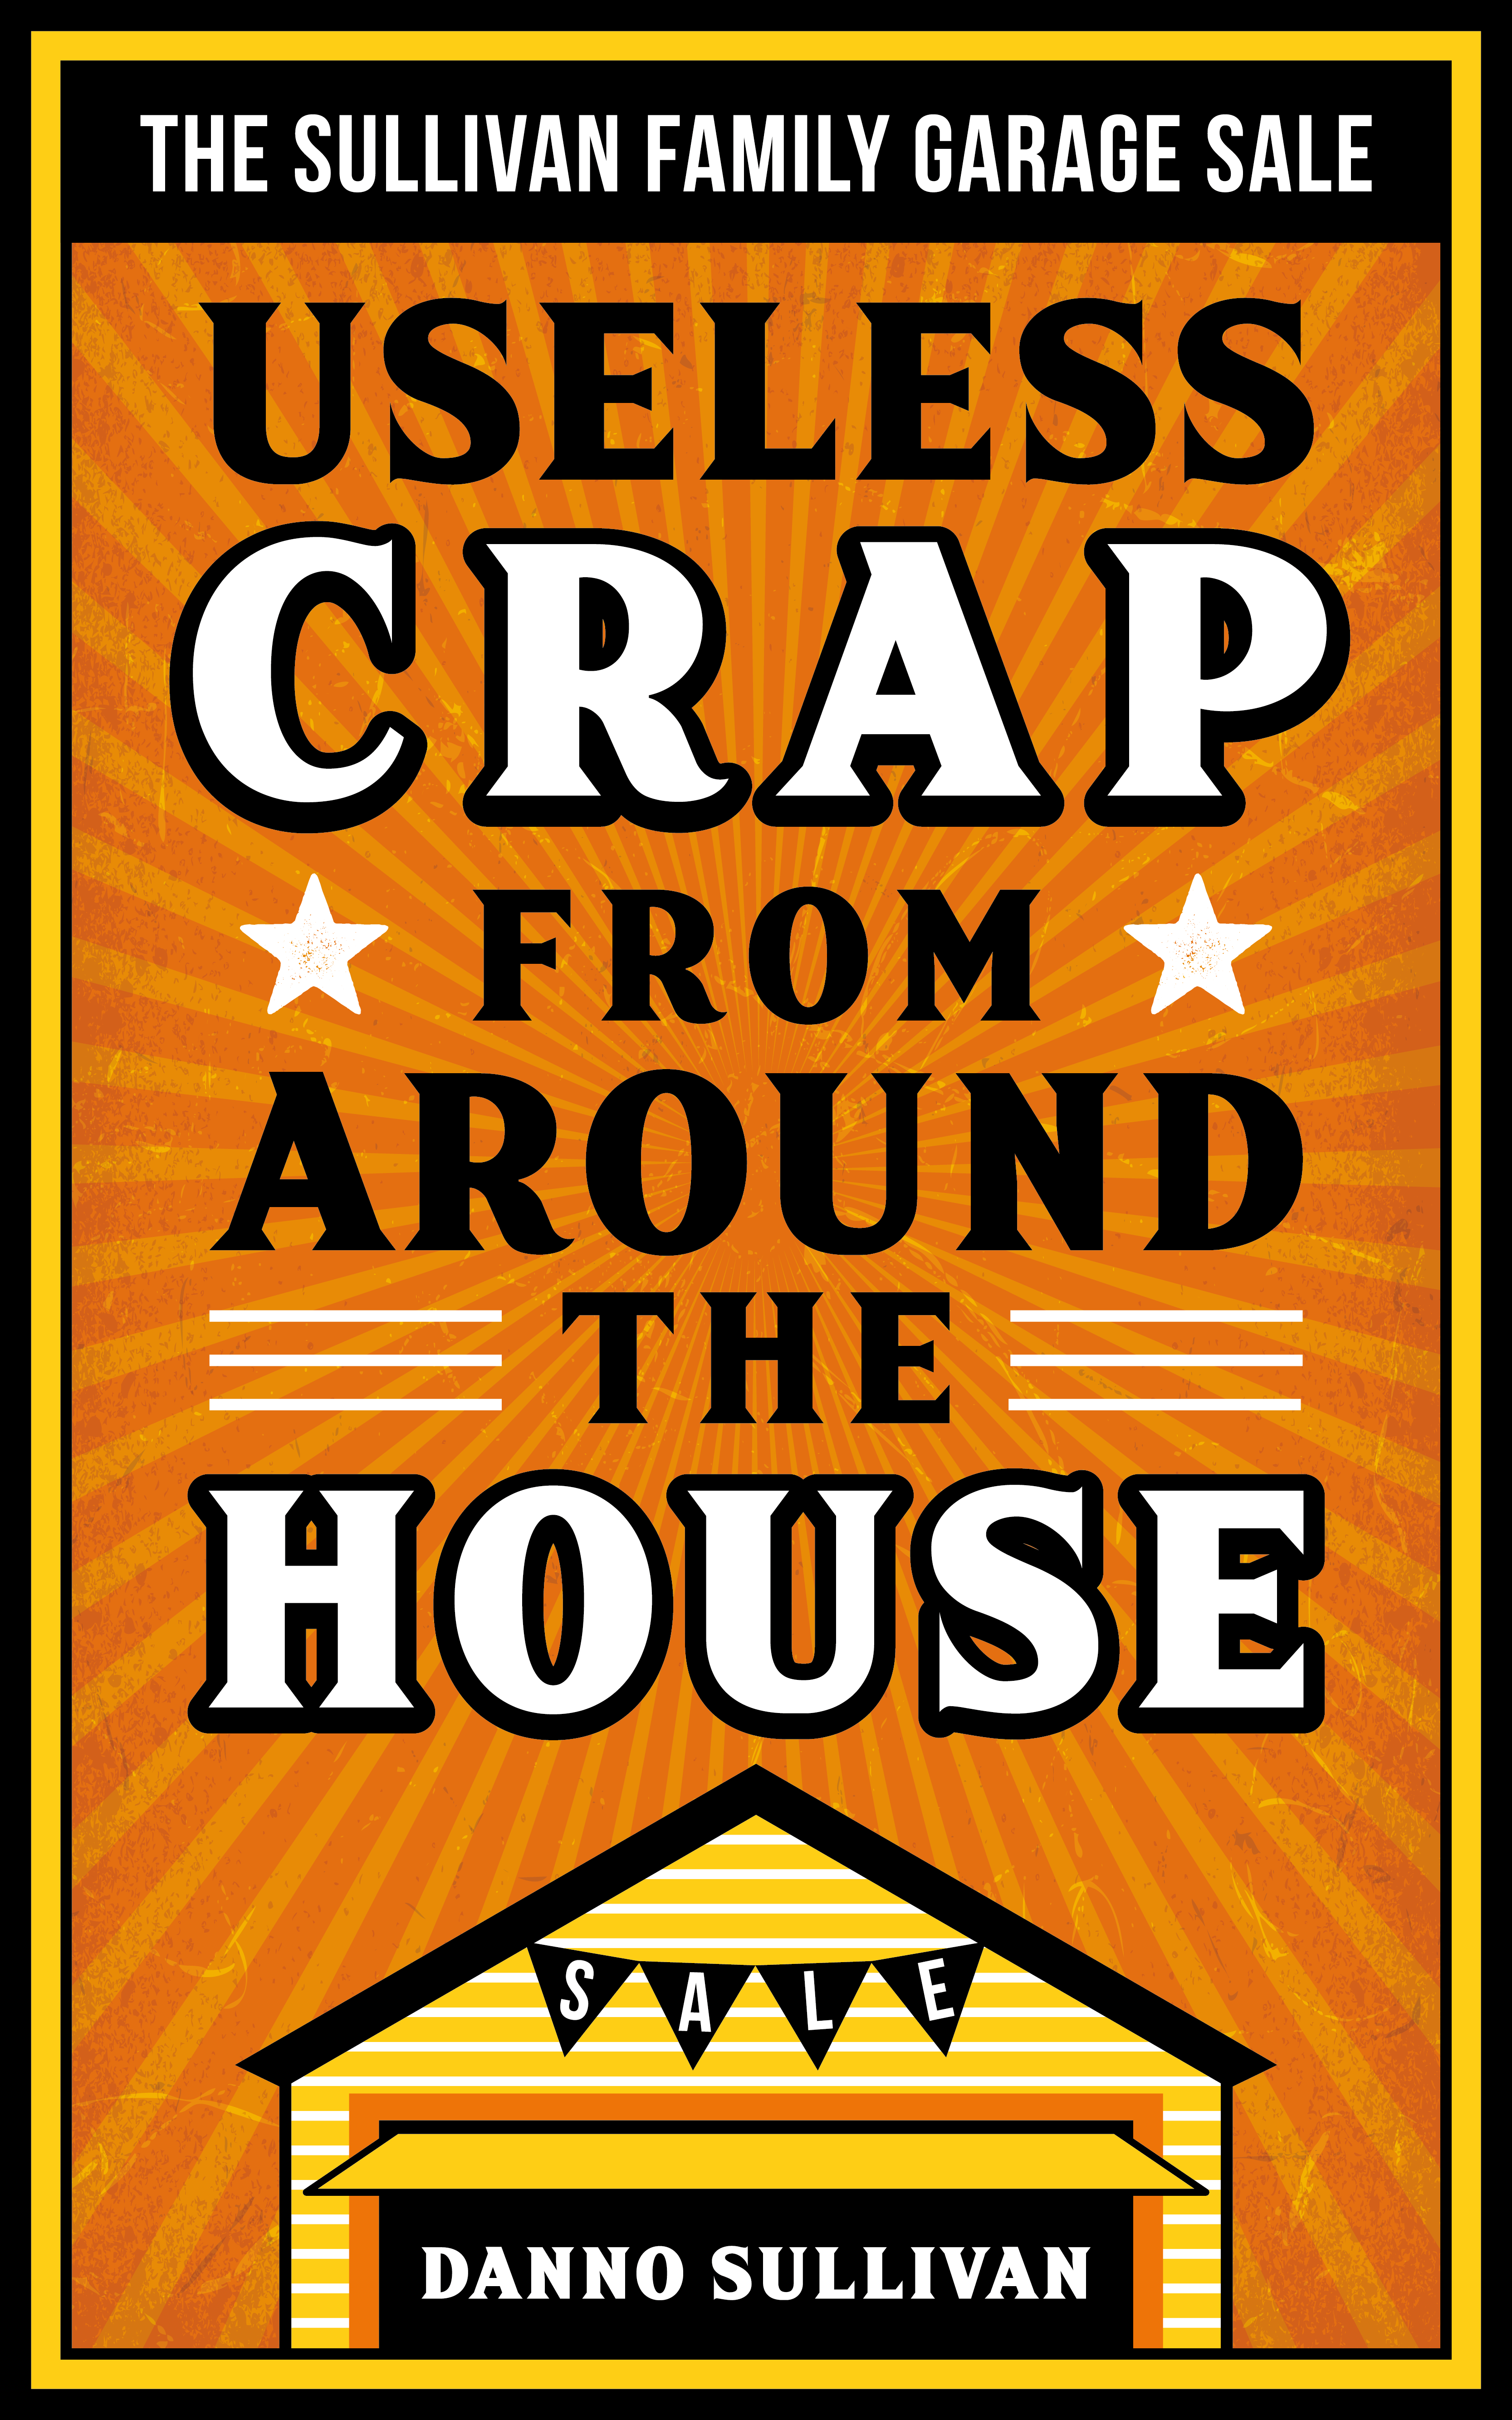 Need a fun, vintage style cover for comedy book